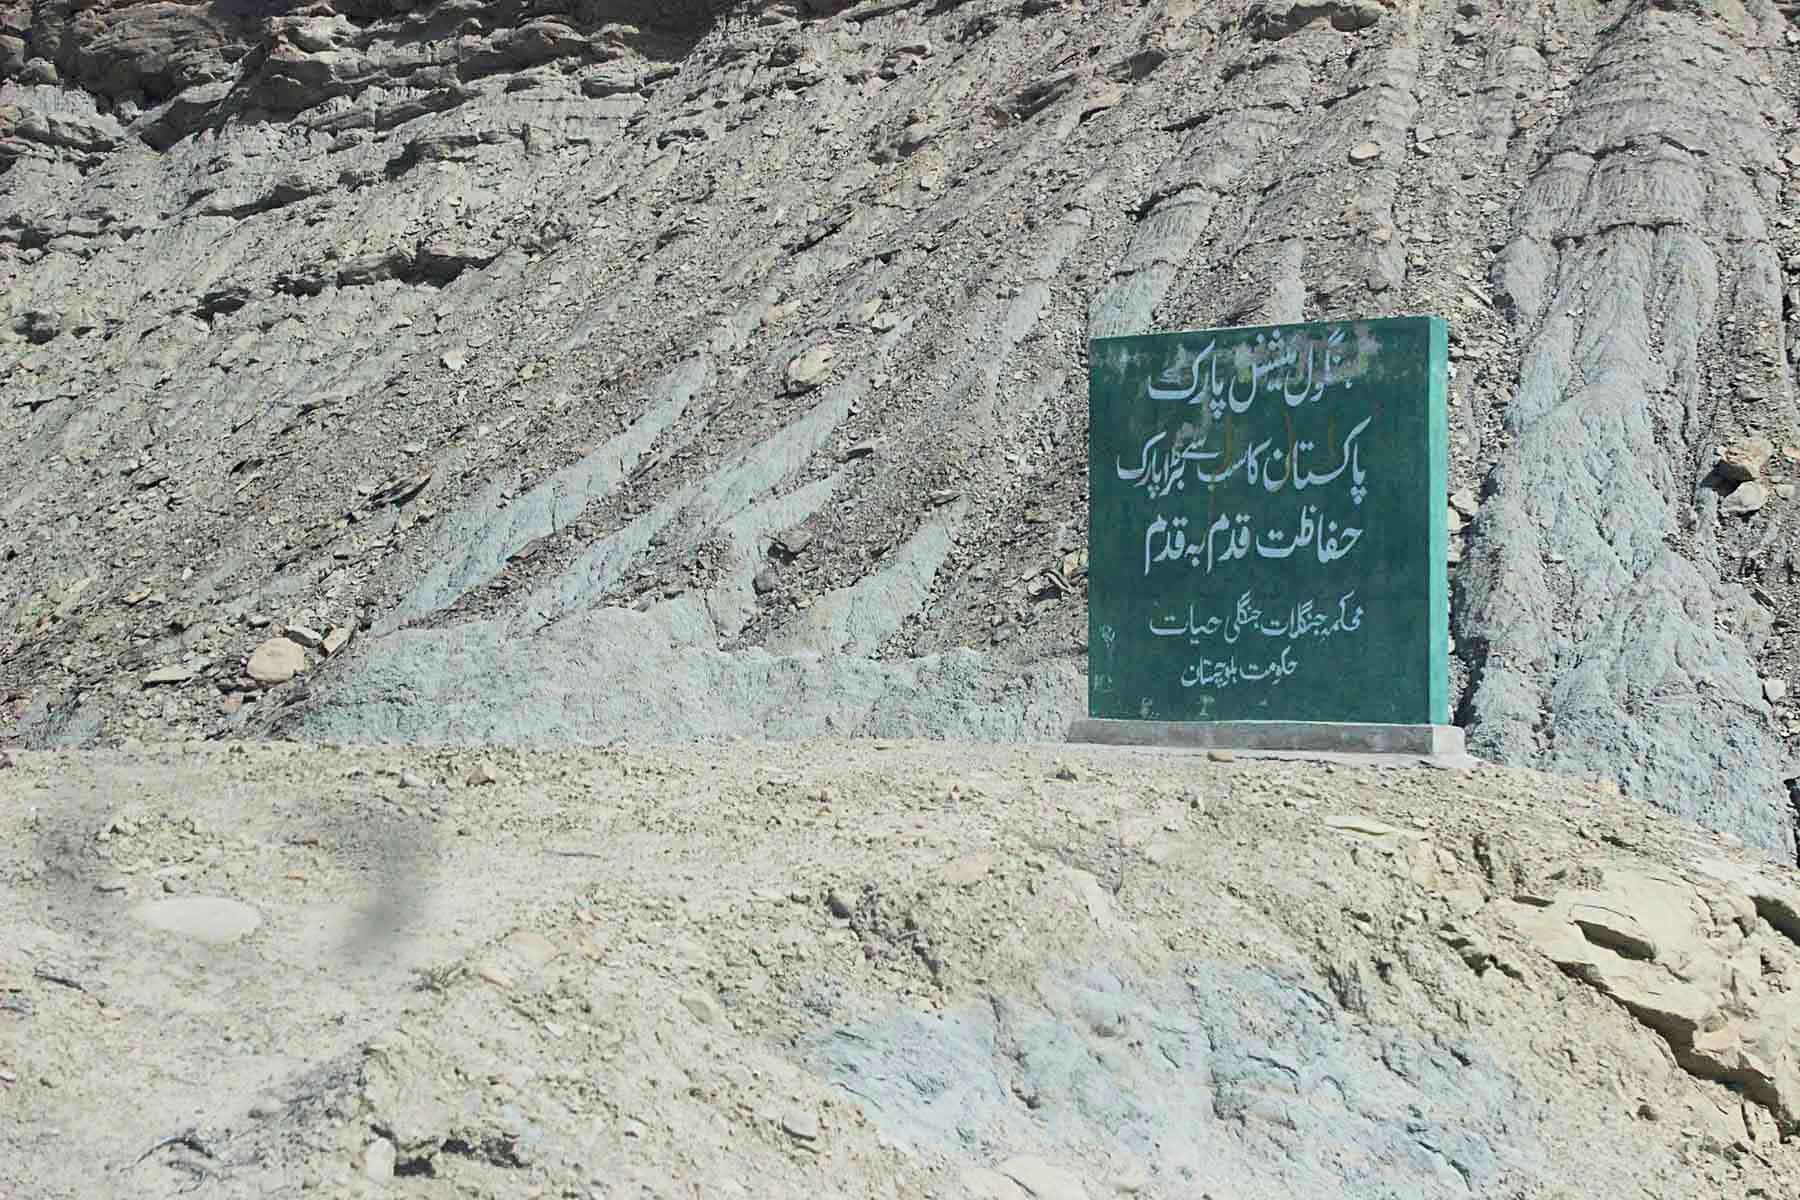 A signboard at the largest national park in Pakistan.